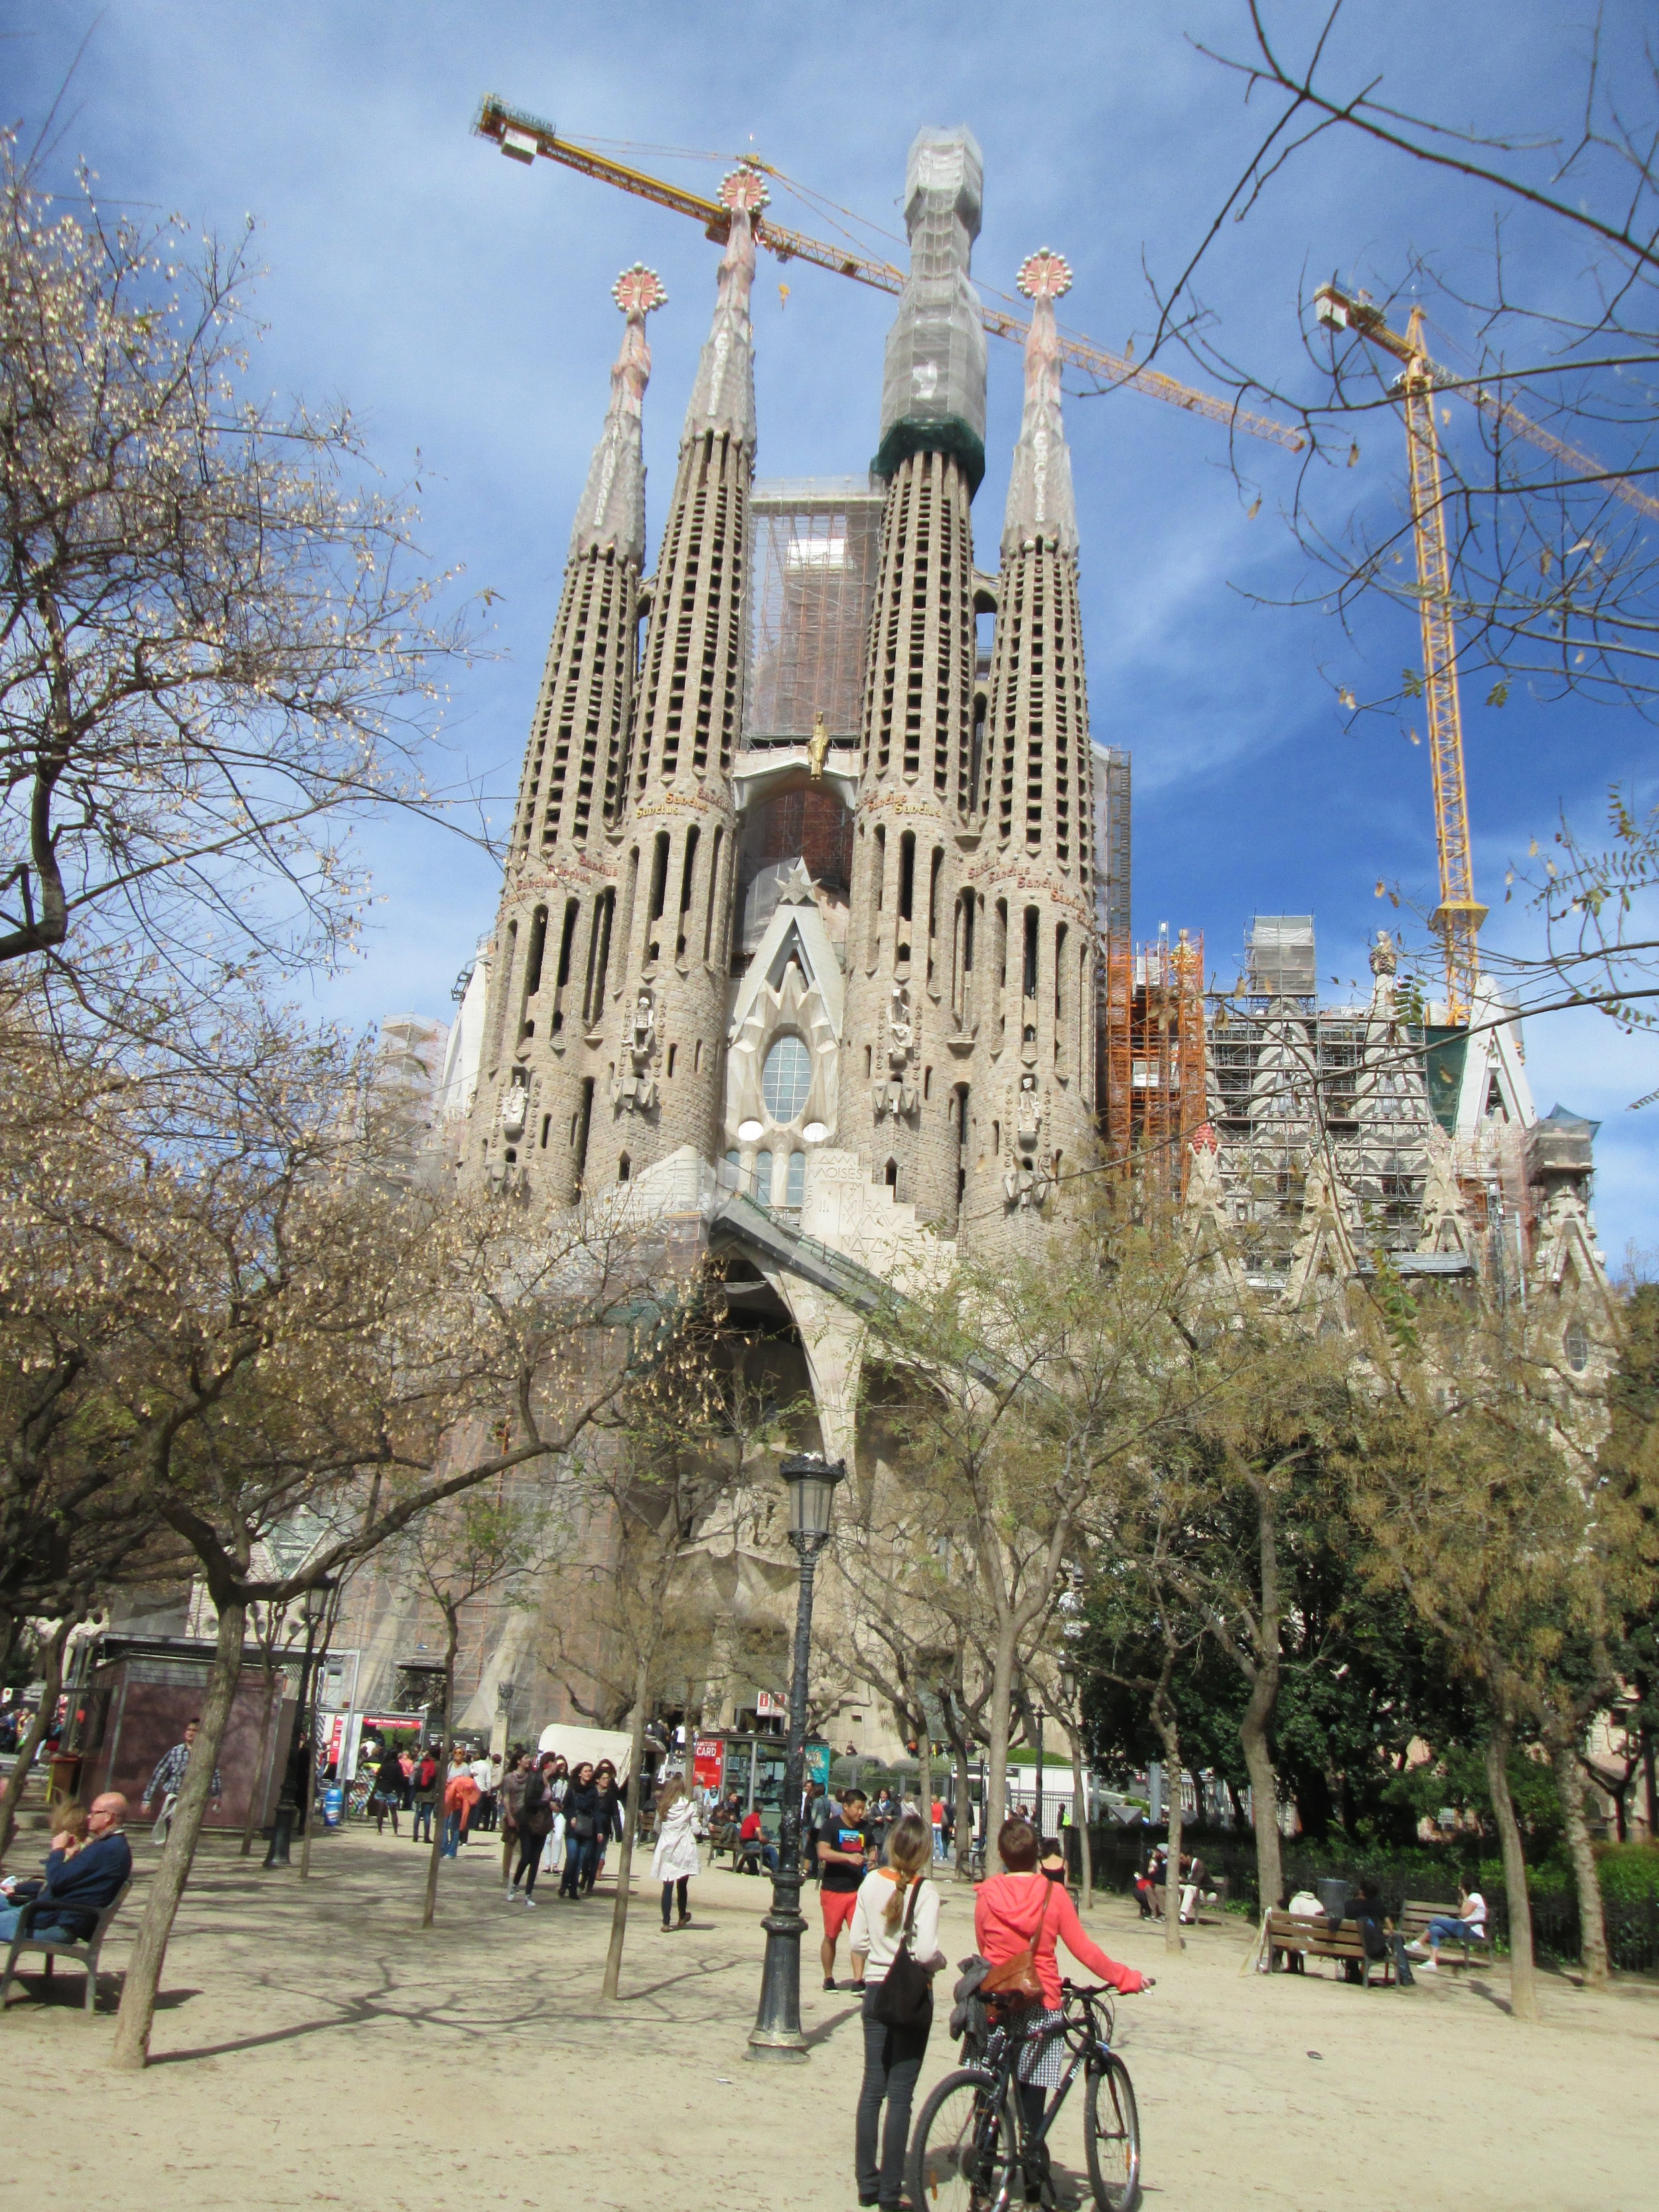 La Sagrada Familia, completely funded by the people, designed by Gaudi.